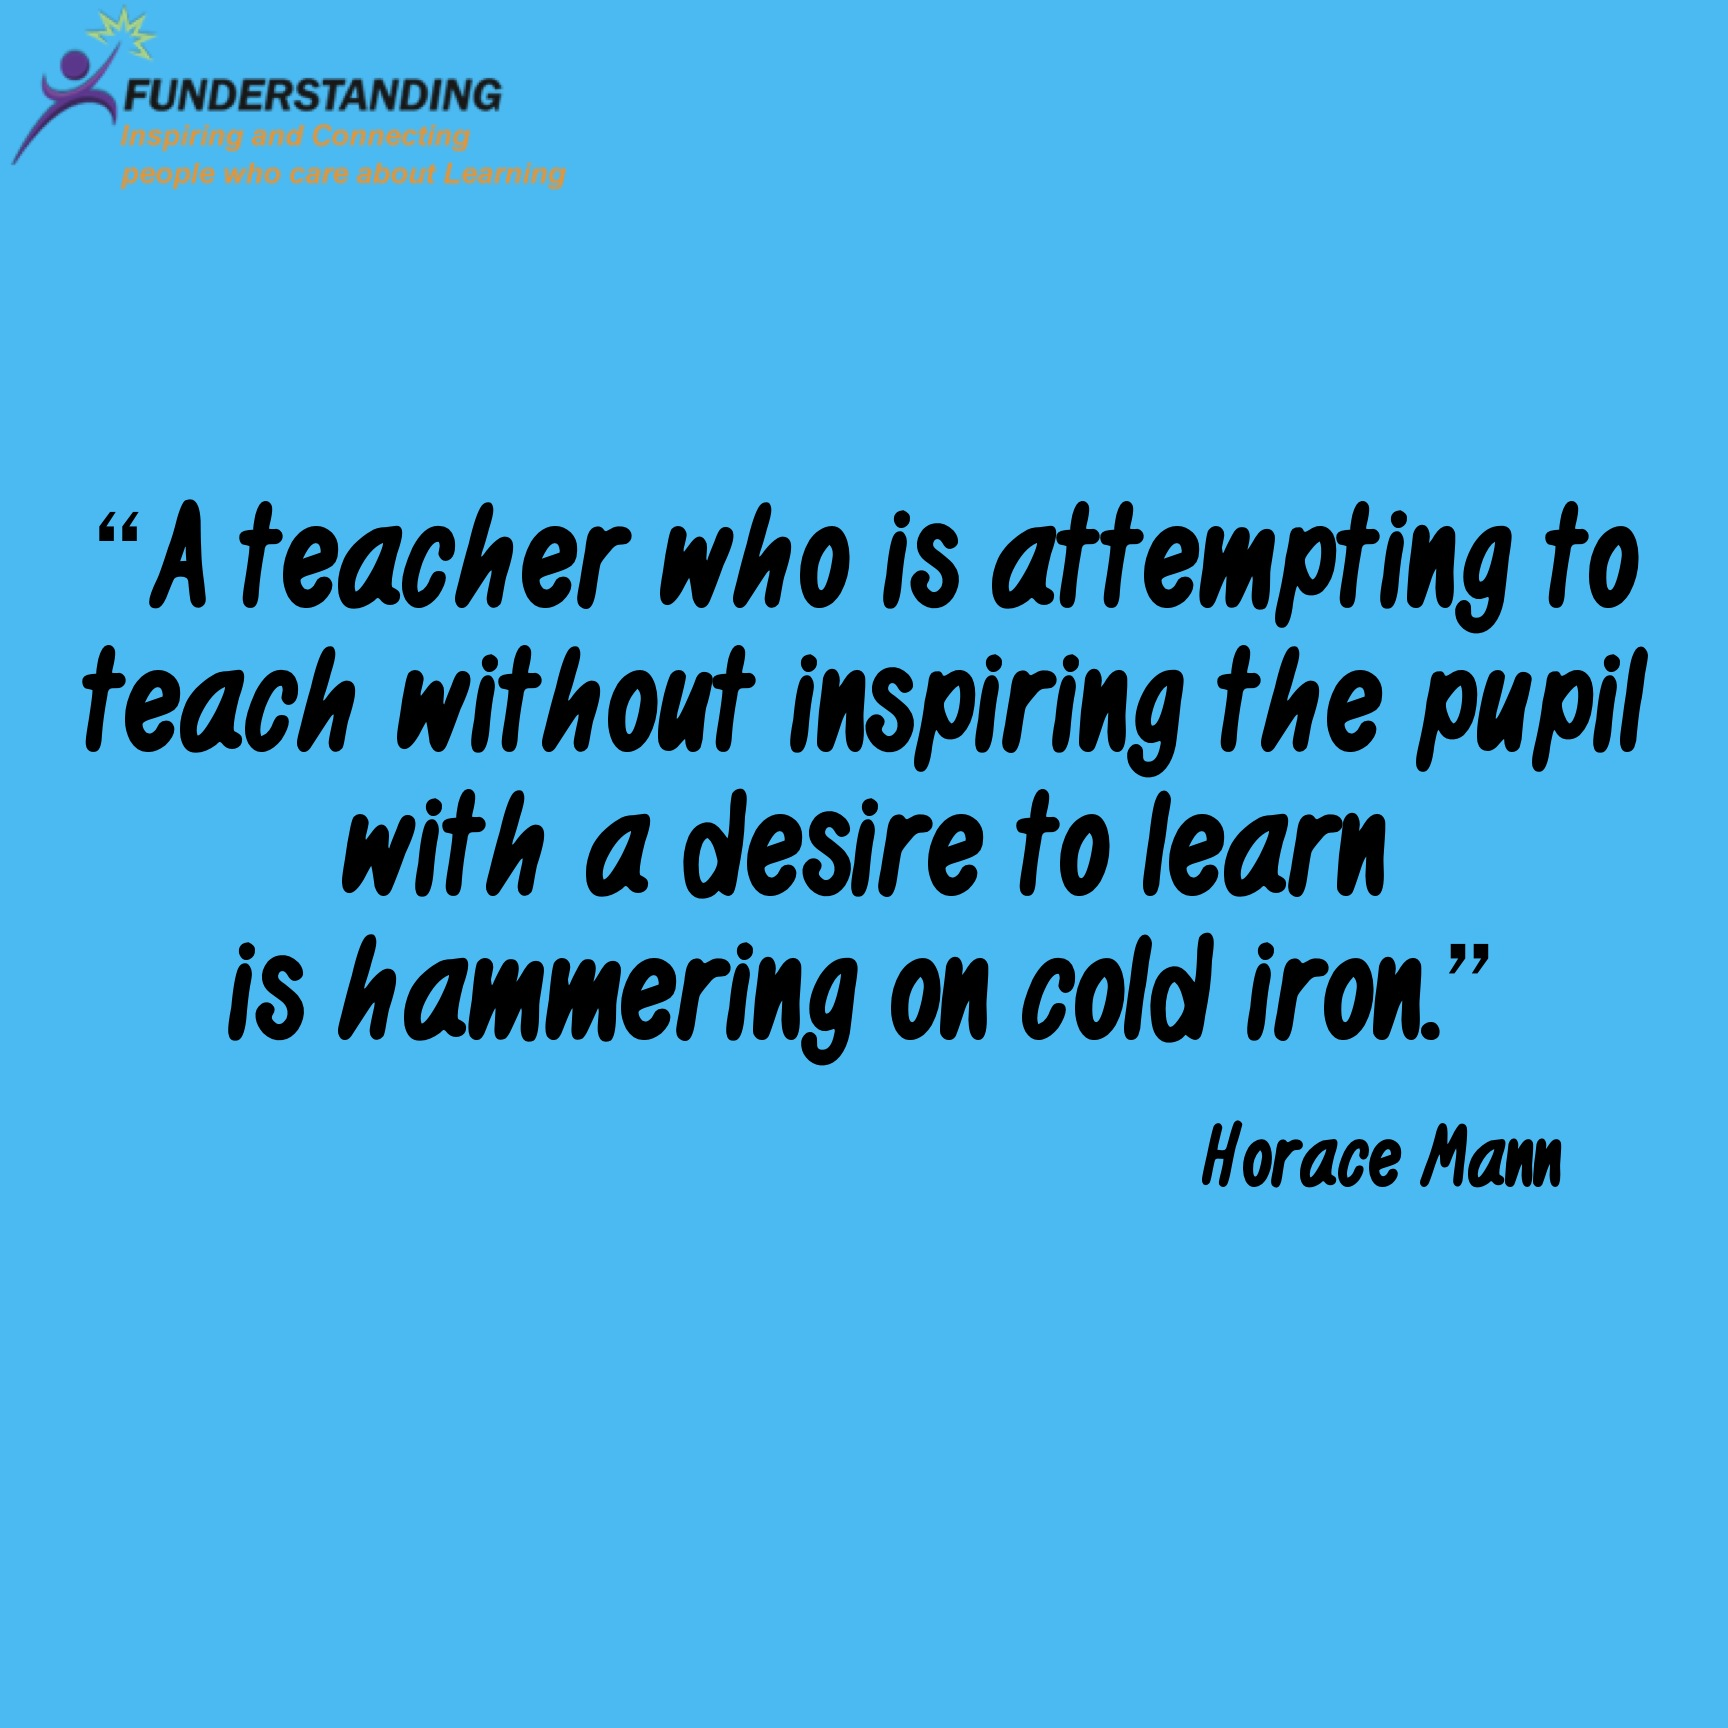 Famous Quote Of The Day Adorable Educational Quotes  Funderstanding Education Curriculum And